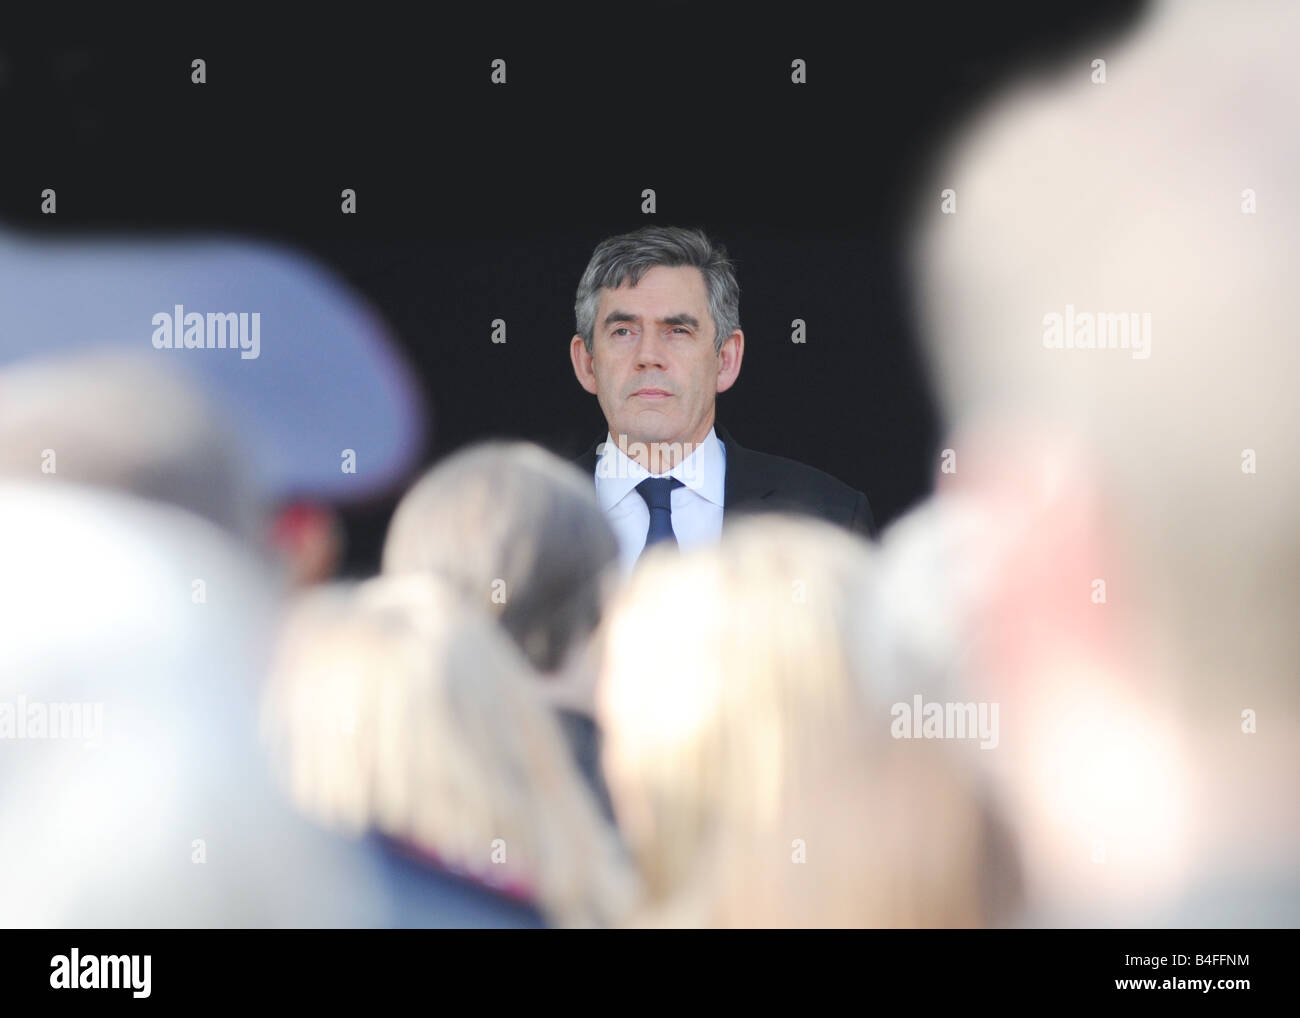 the prime minister gordon brown addressing a memorial service to a police officer murdered on duty - Stock Image